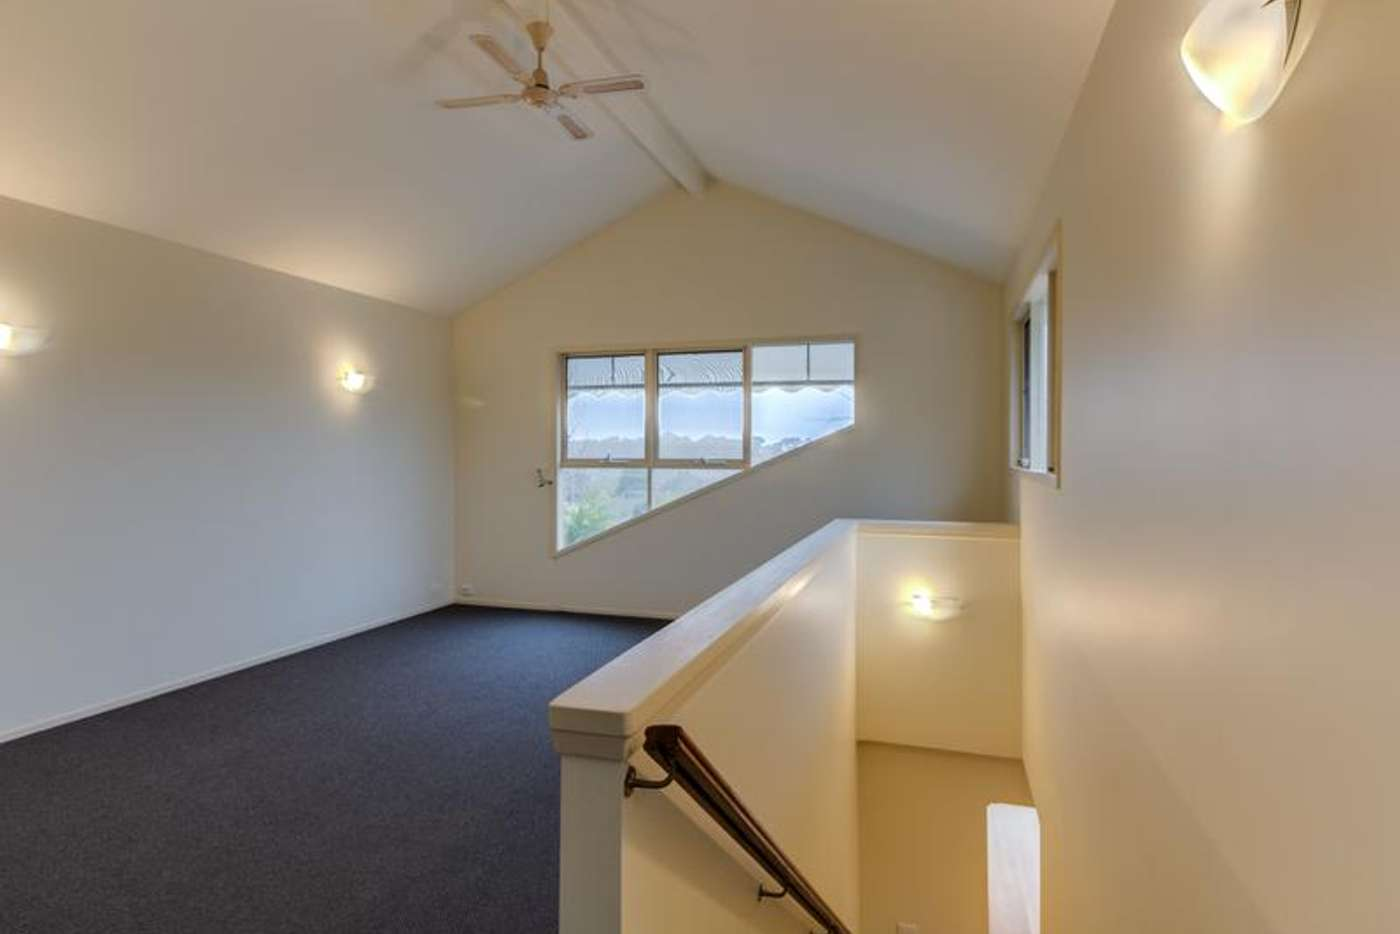 Sixth view of Homely house listing, 1 Alburnum Crescent, Templestowe Lower VIC 3107